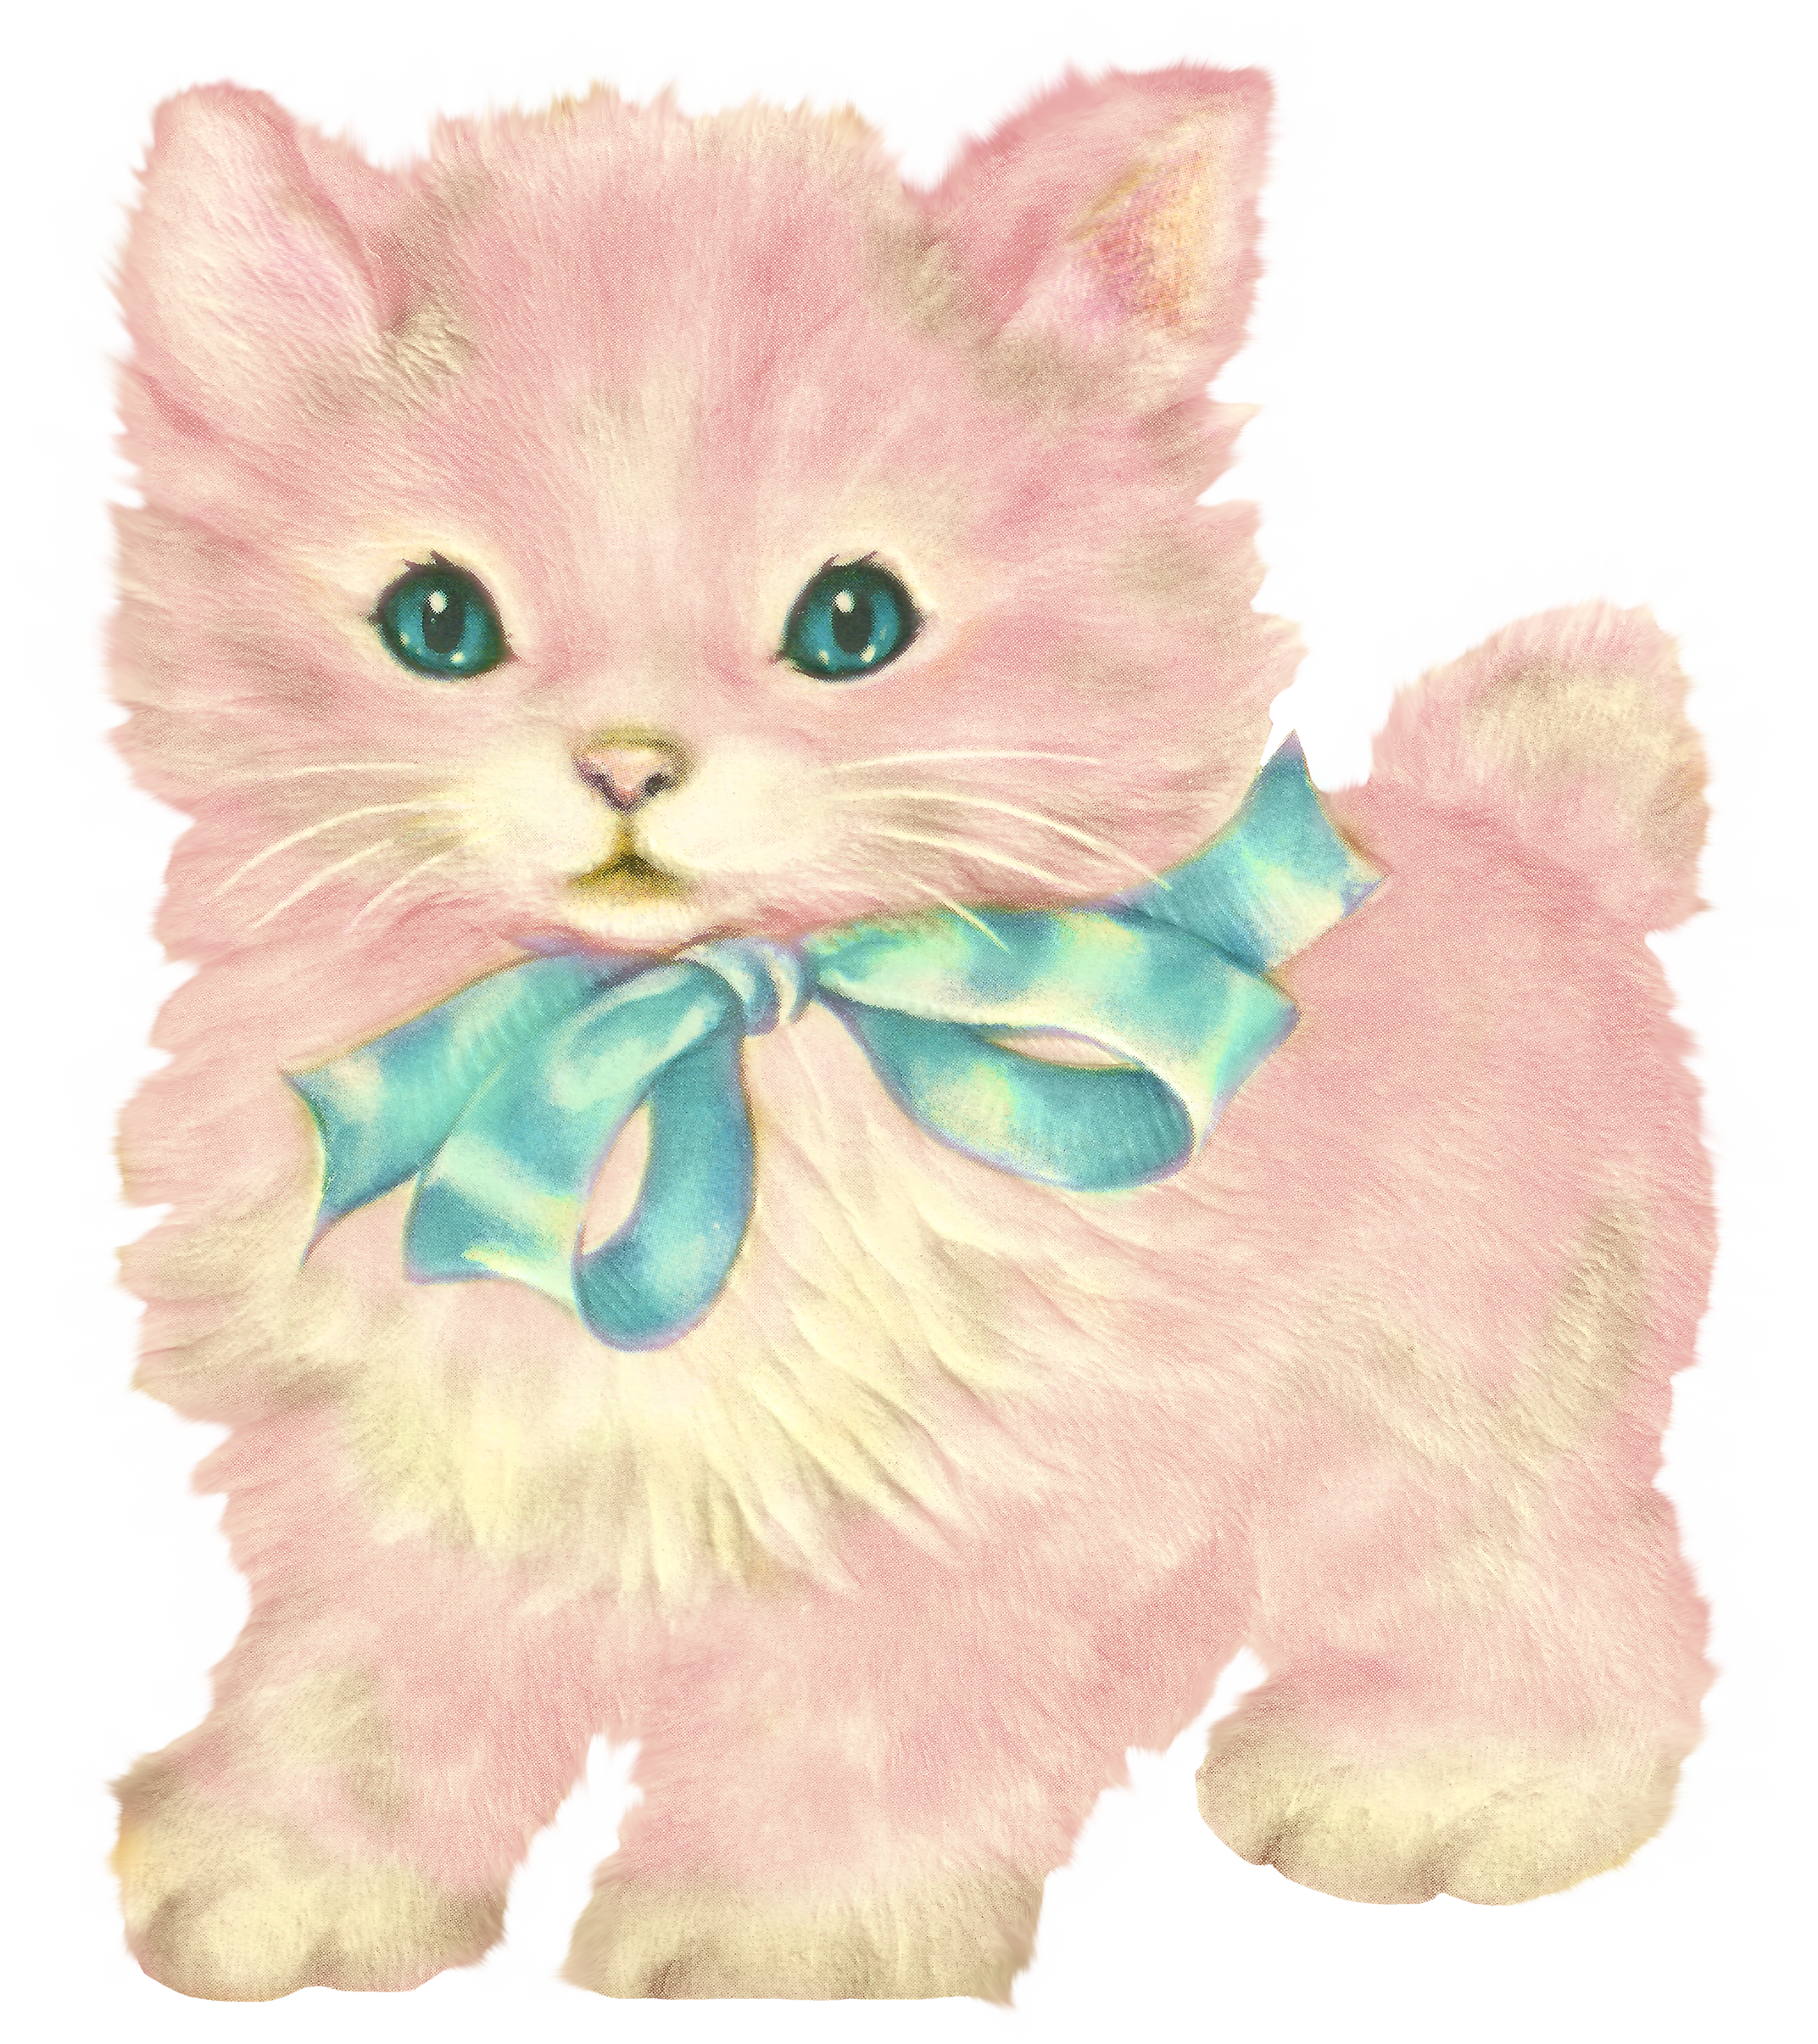 4th of july cat clipart graphic library stock Kitschy Kitty Cat Clip Art with Little Dear Prints - Free Pretty ... graphic library stock